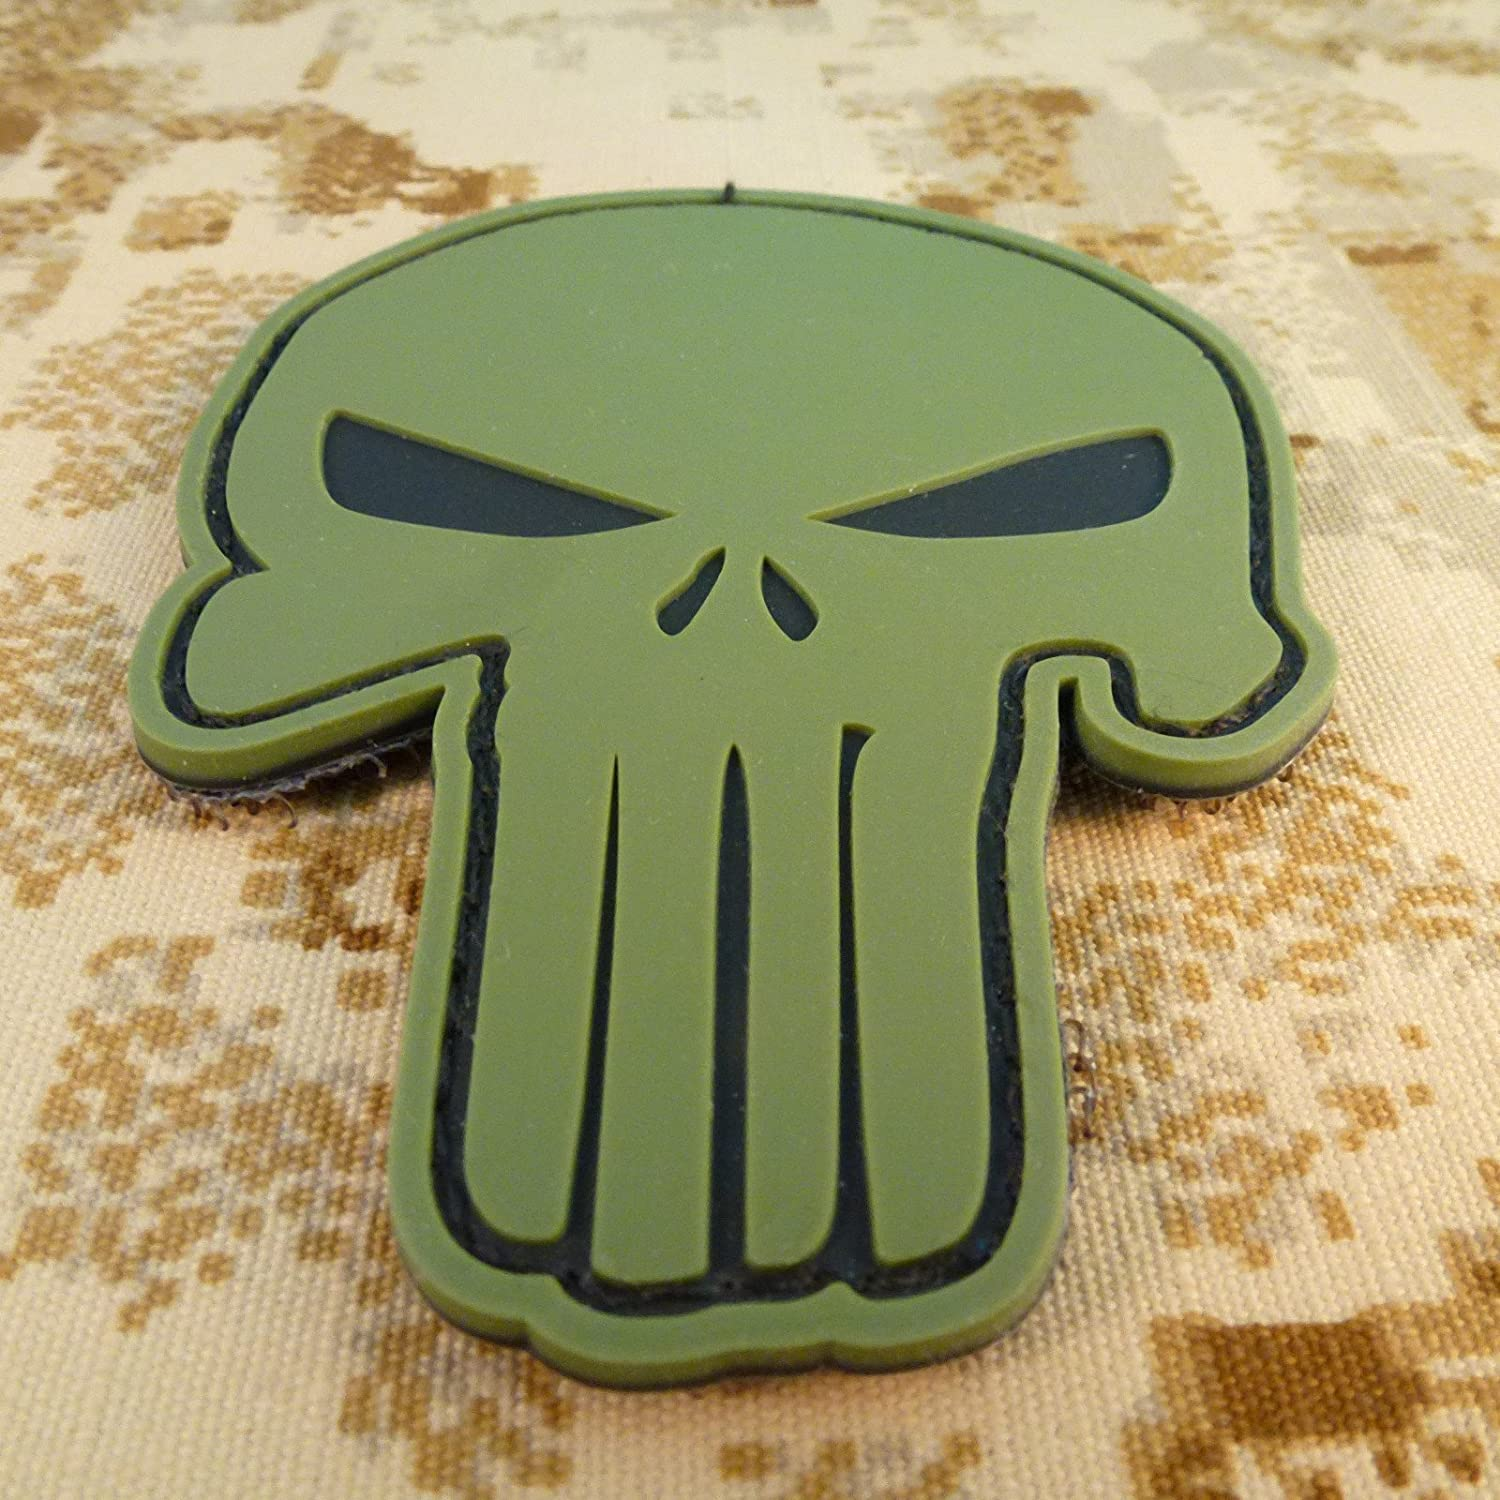 2AFTER1 Olive Drab OD Punisher Skull PVC 3D Rubber DEVGRU Army Touch